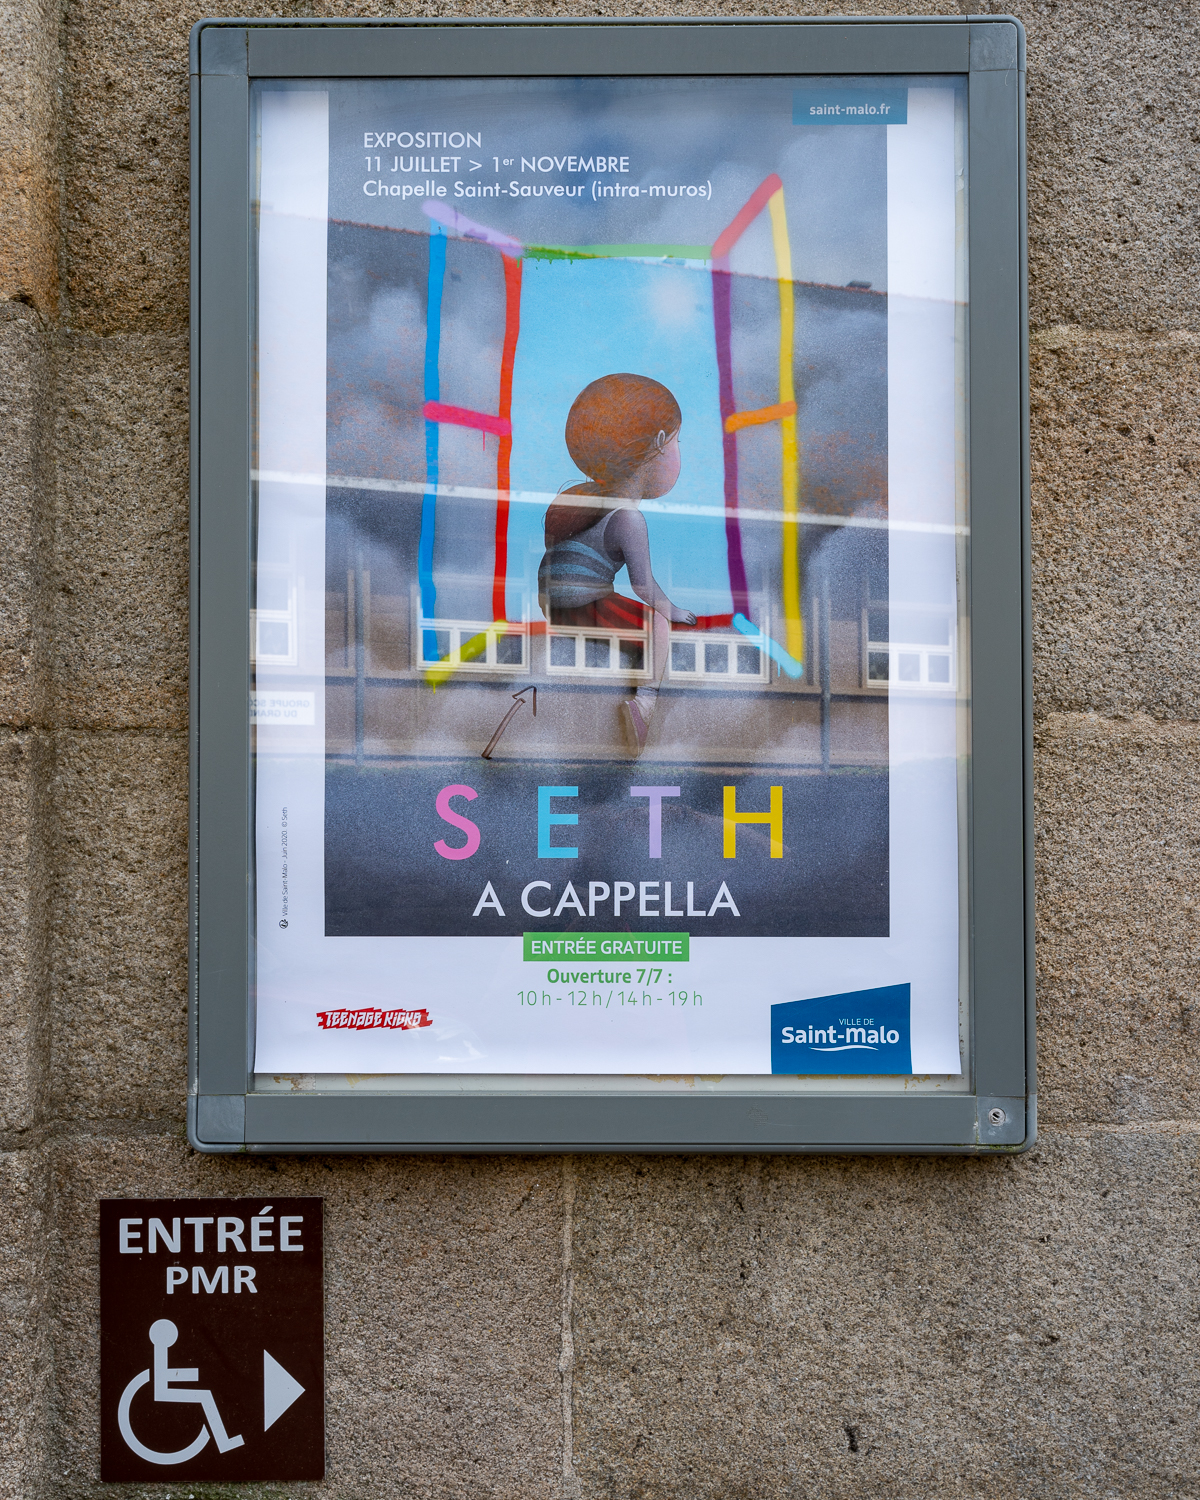 poster of the Seth exhibition in St Malo